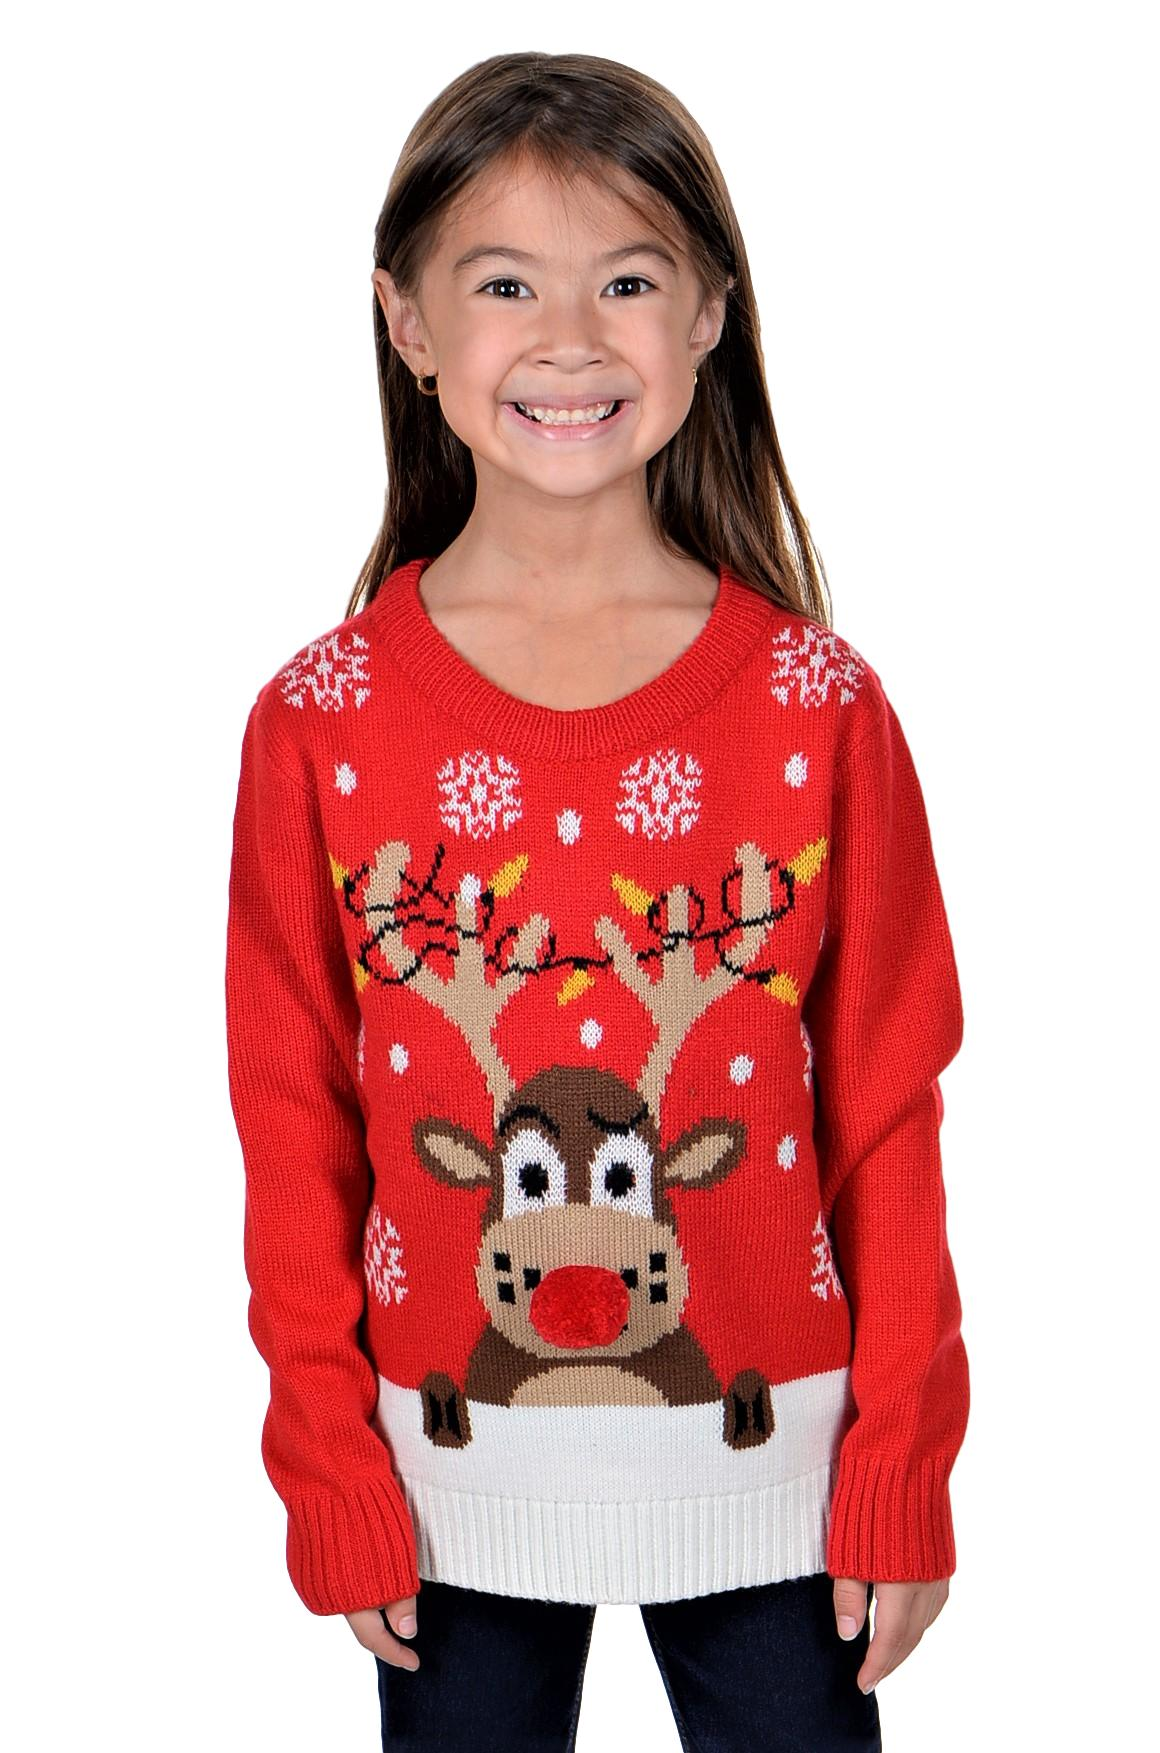 Details about KESIS Children Ugly Christmas Sweater Red